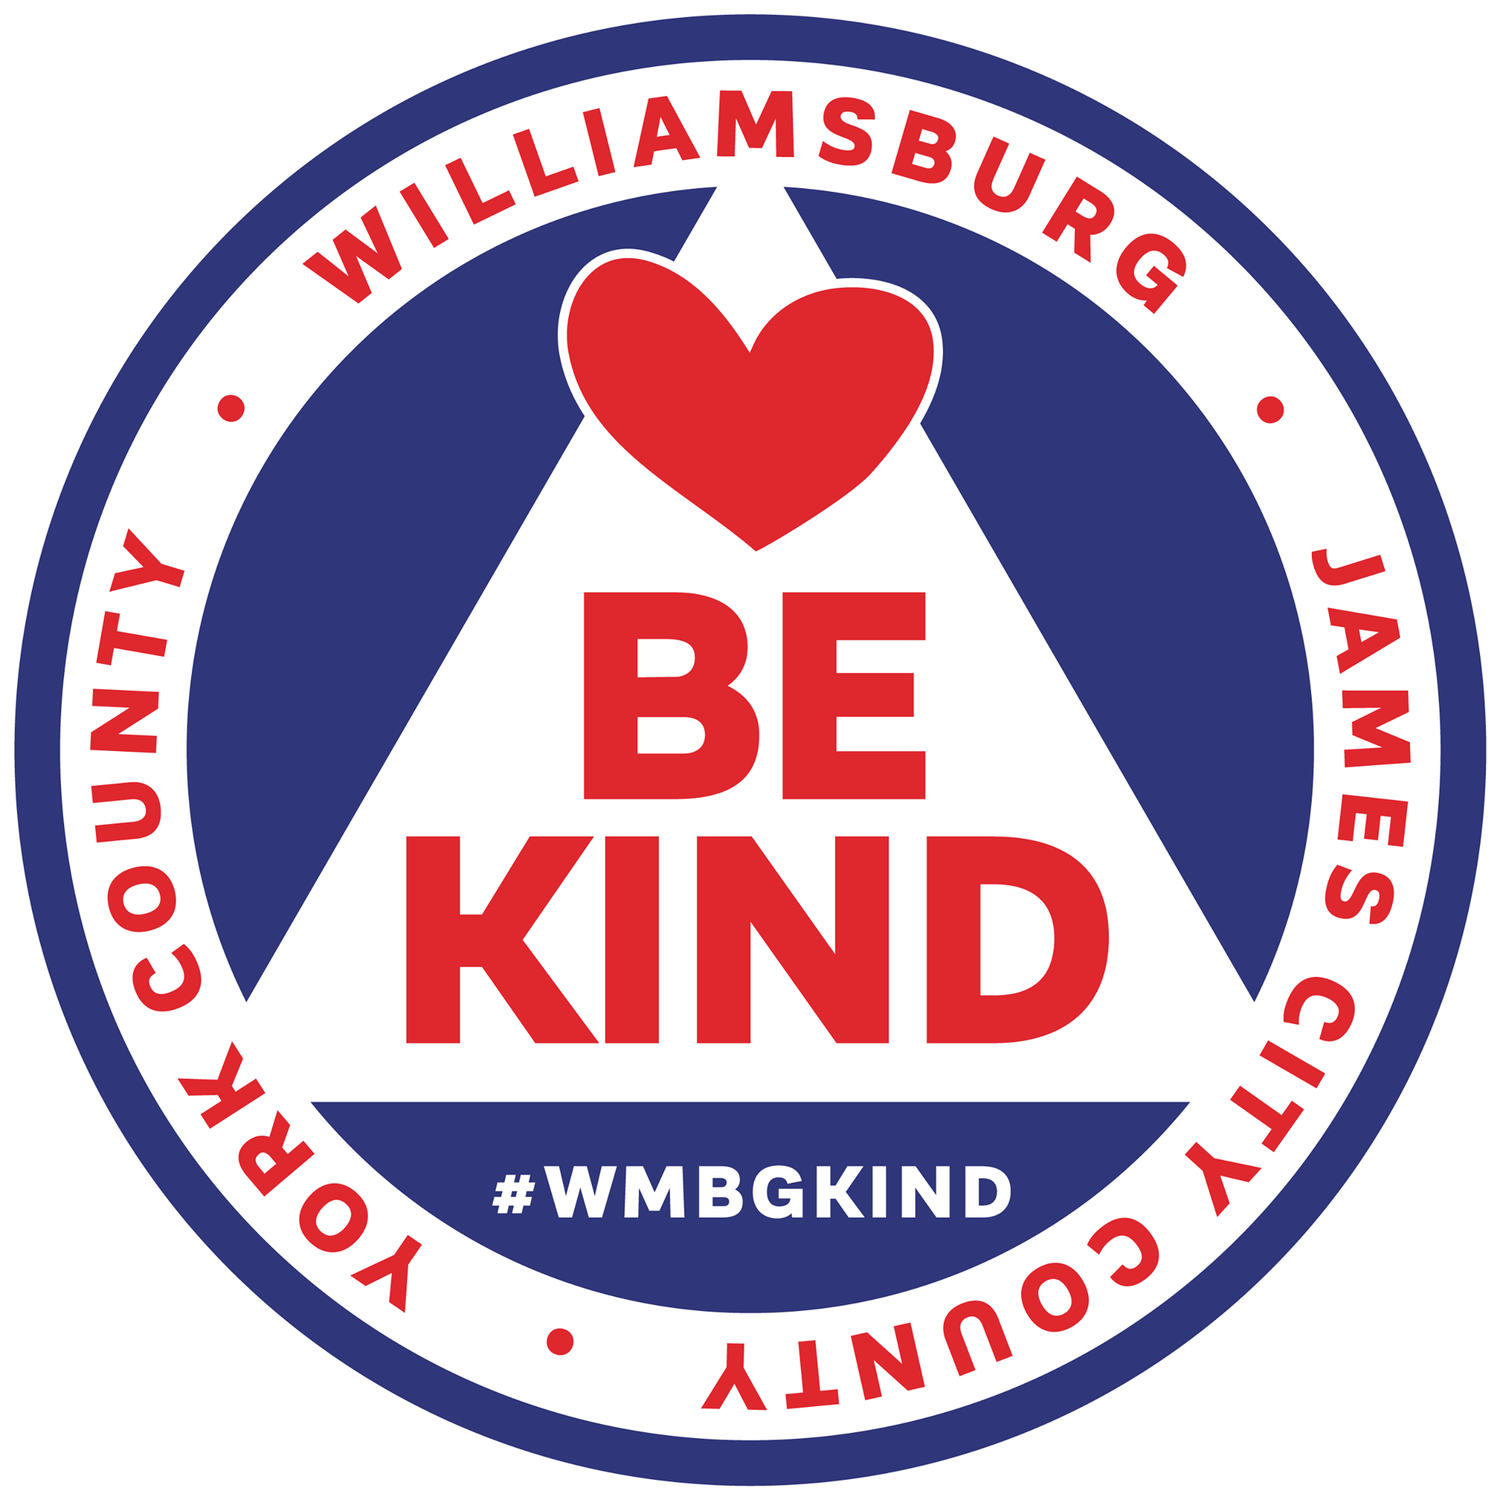 WMBGkind I Be Kind | Williamsburg, Virginia